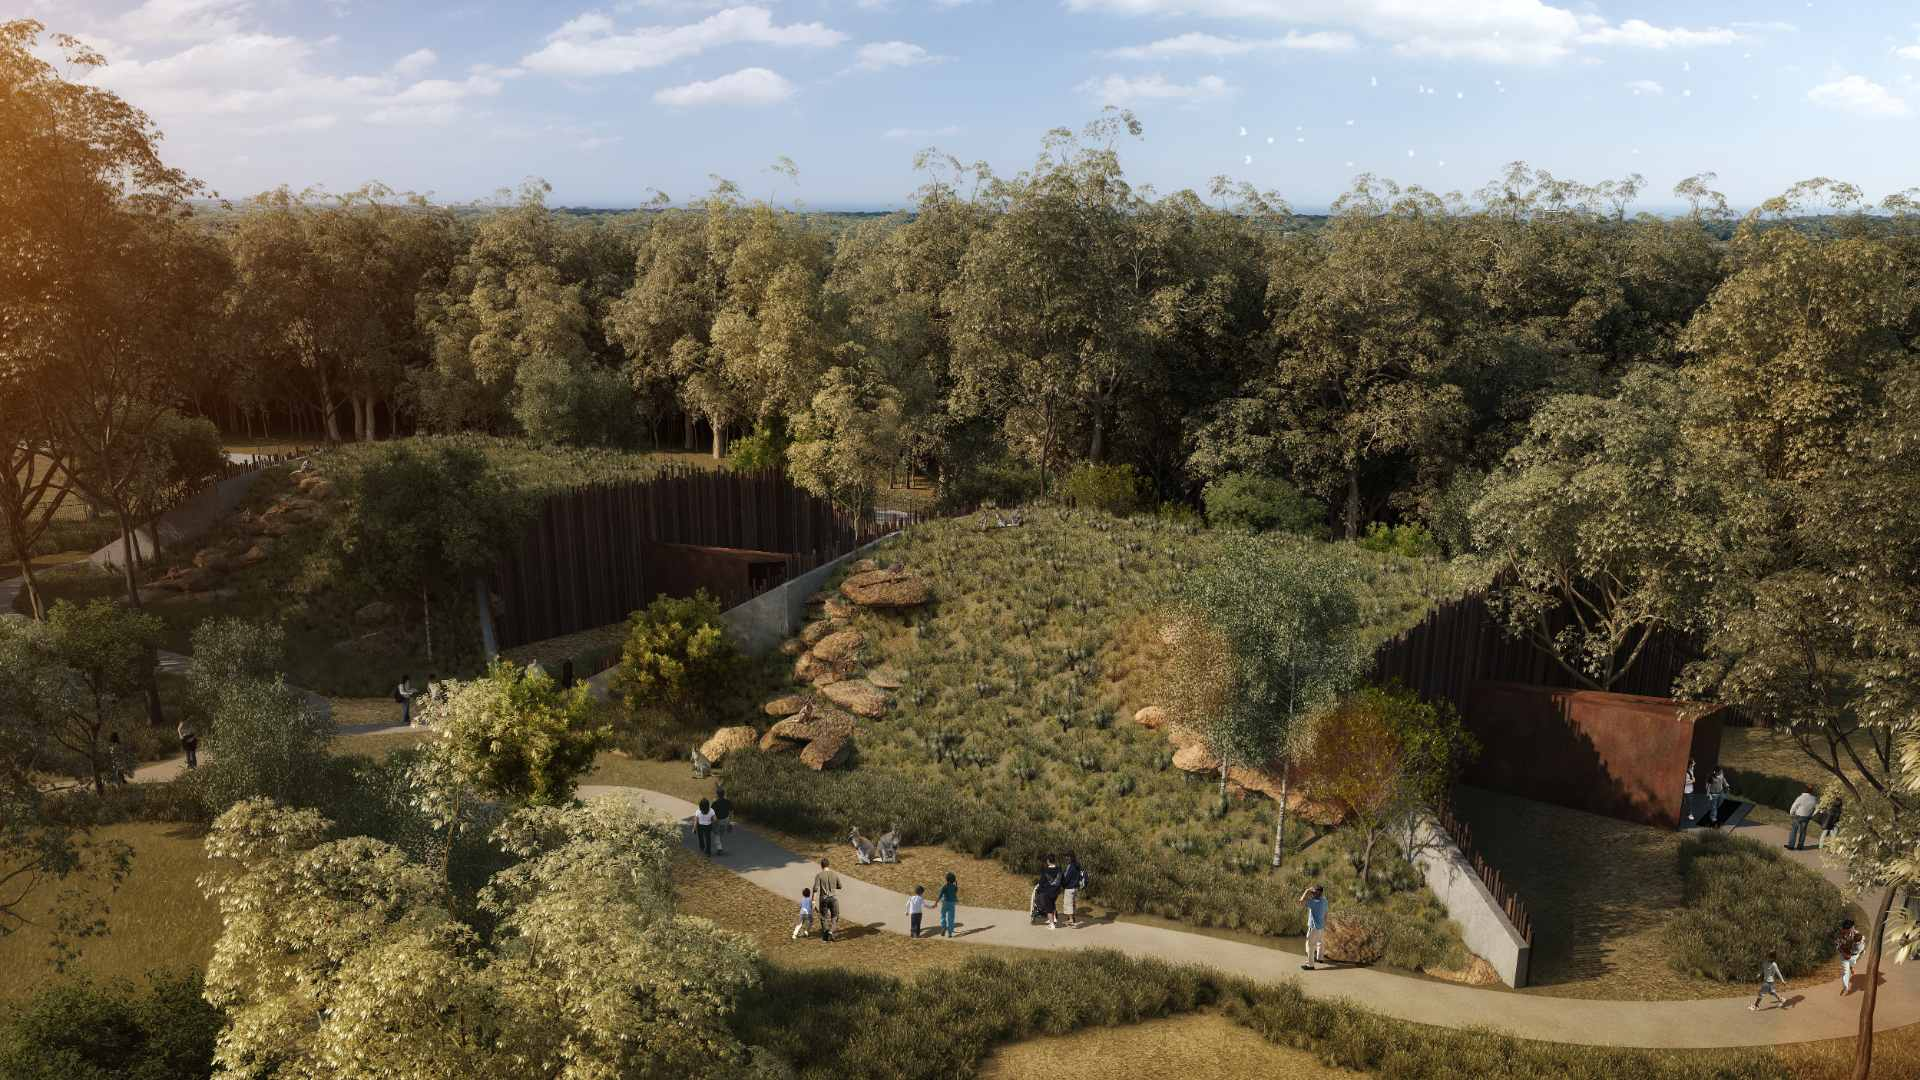 The New Sydney Zoo Will Be Home to Australia's Largest Reptile and Nocturnal Animal House